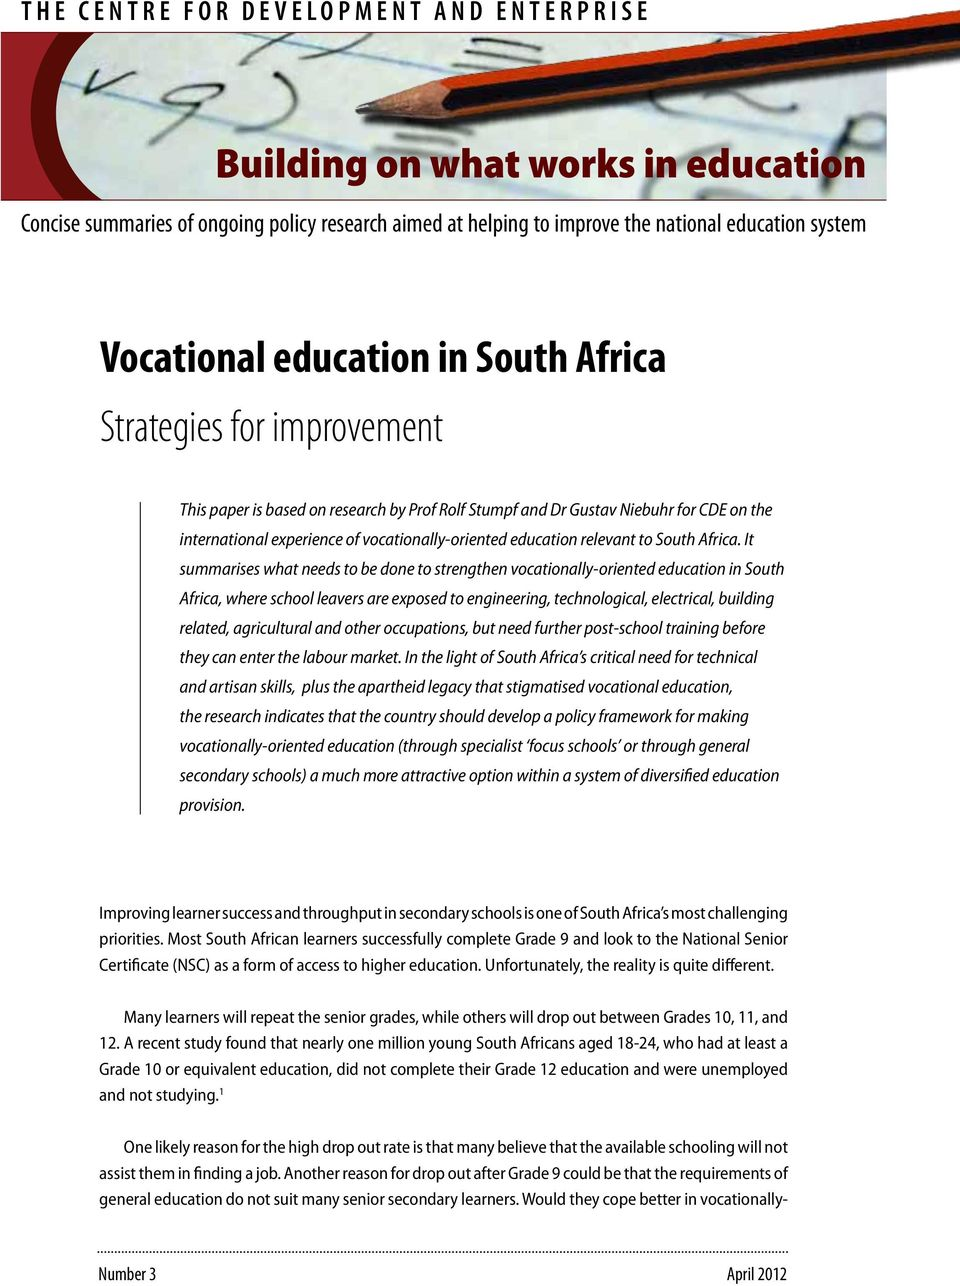 education relevant to South Africa.